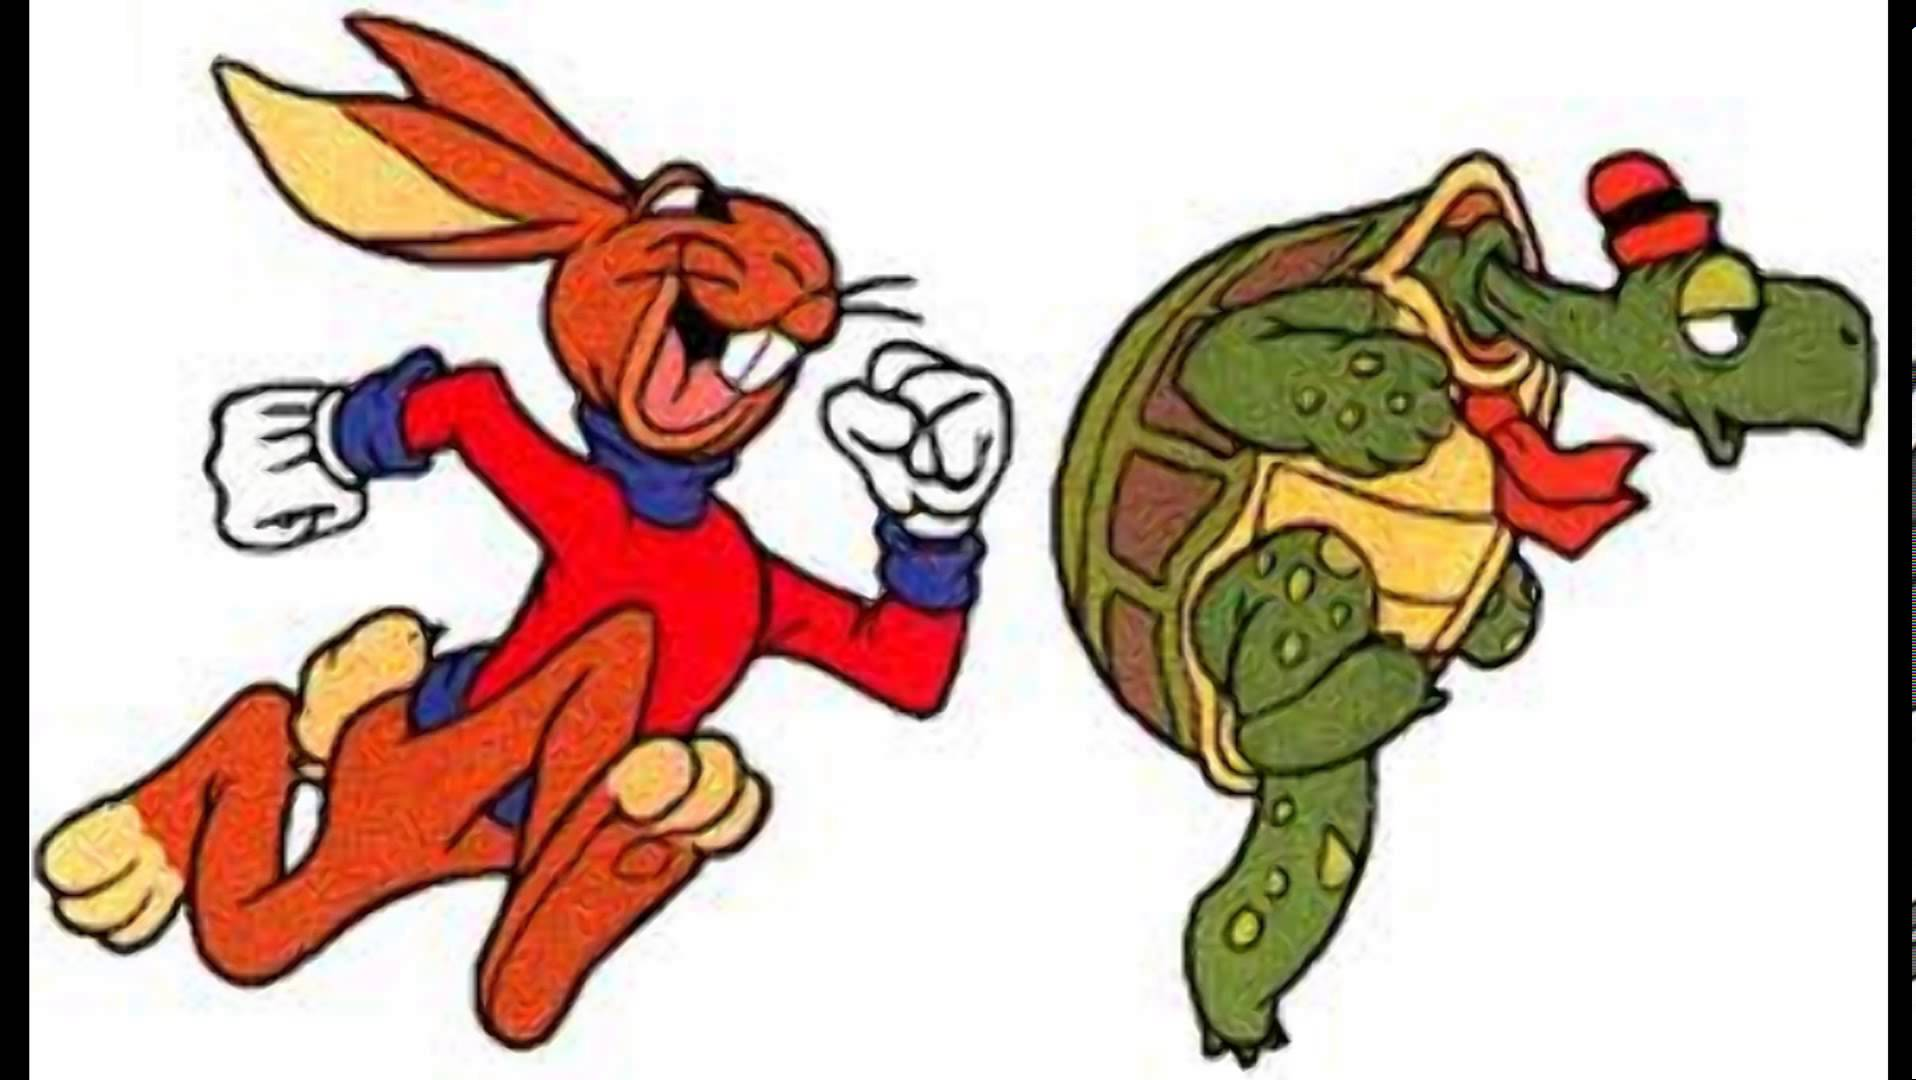 1916x1080 Tortoise And The Hare